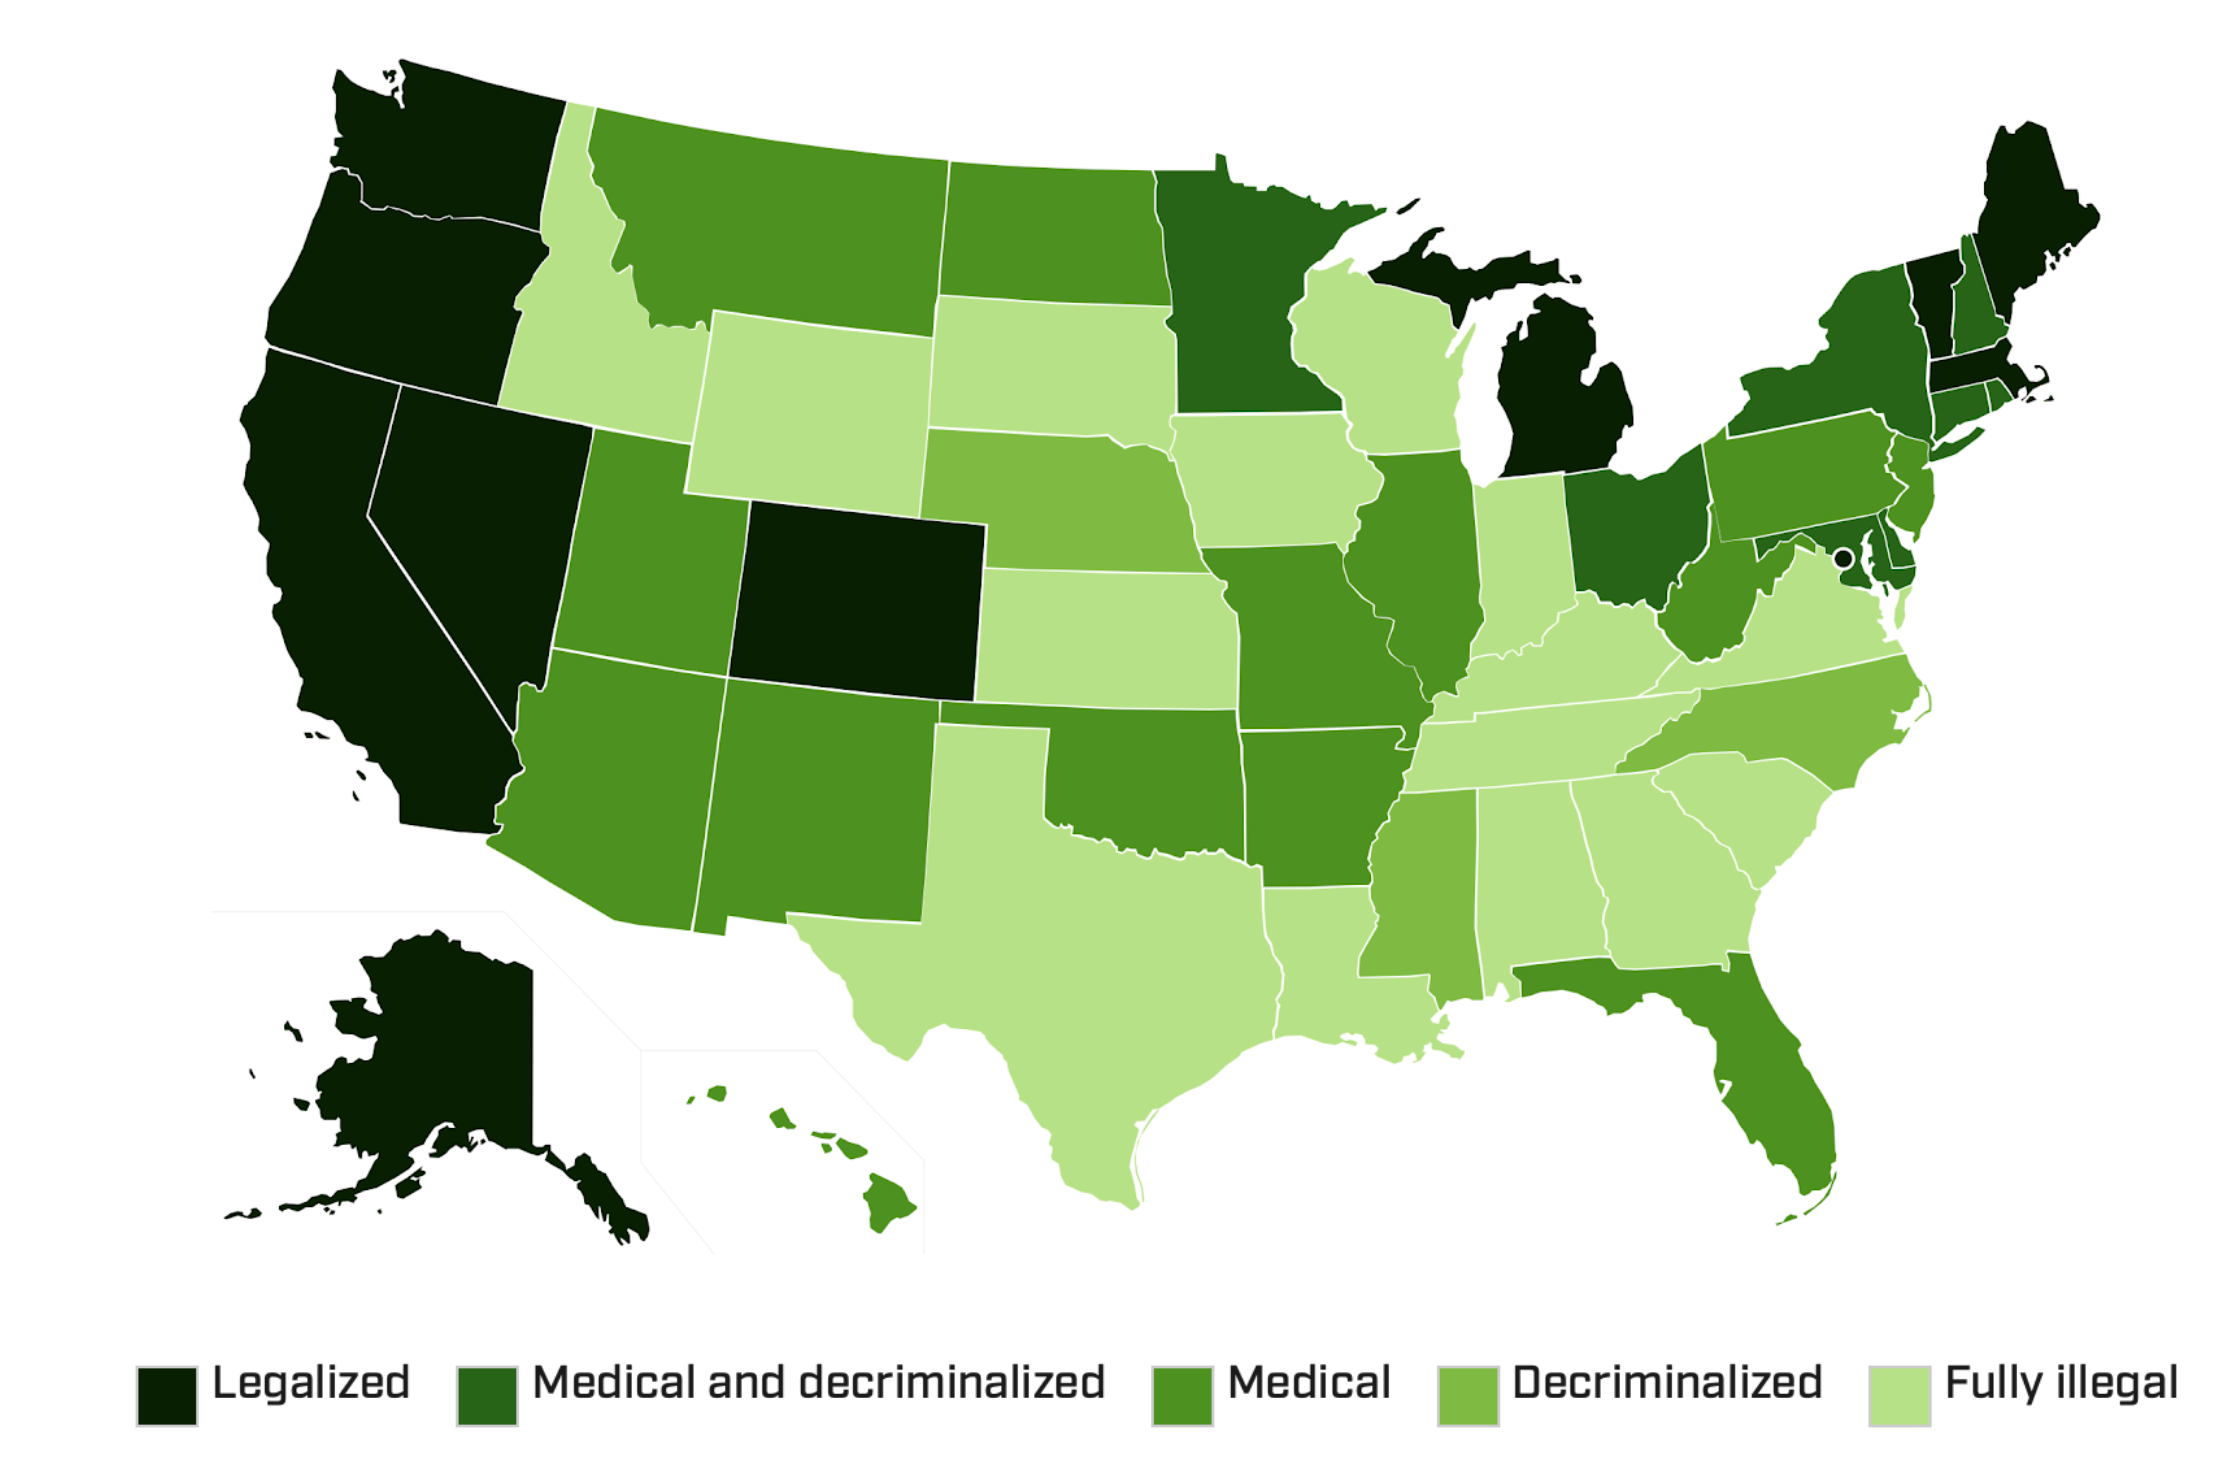 Figure 1: Status of marijuana laws by state as of March 2019